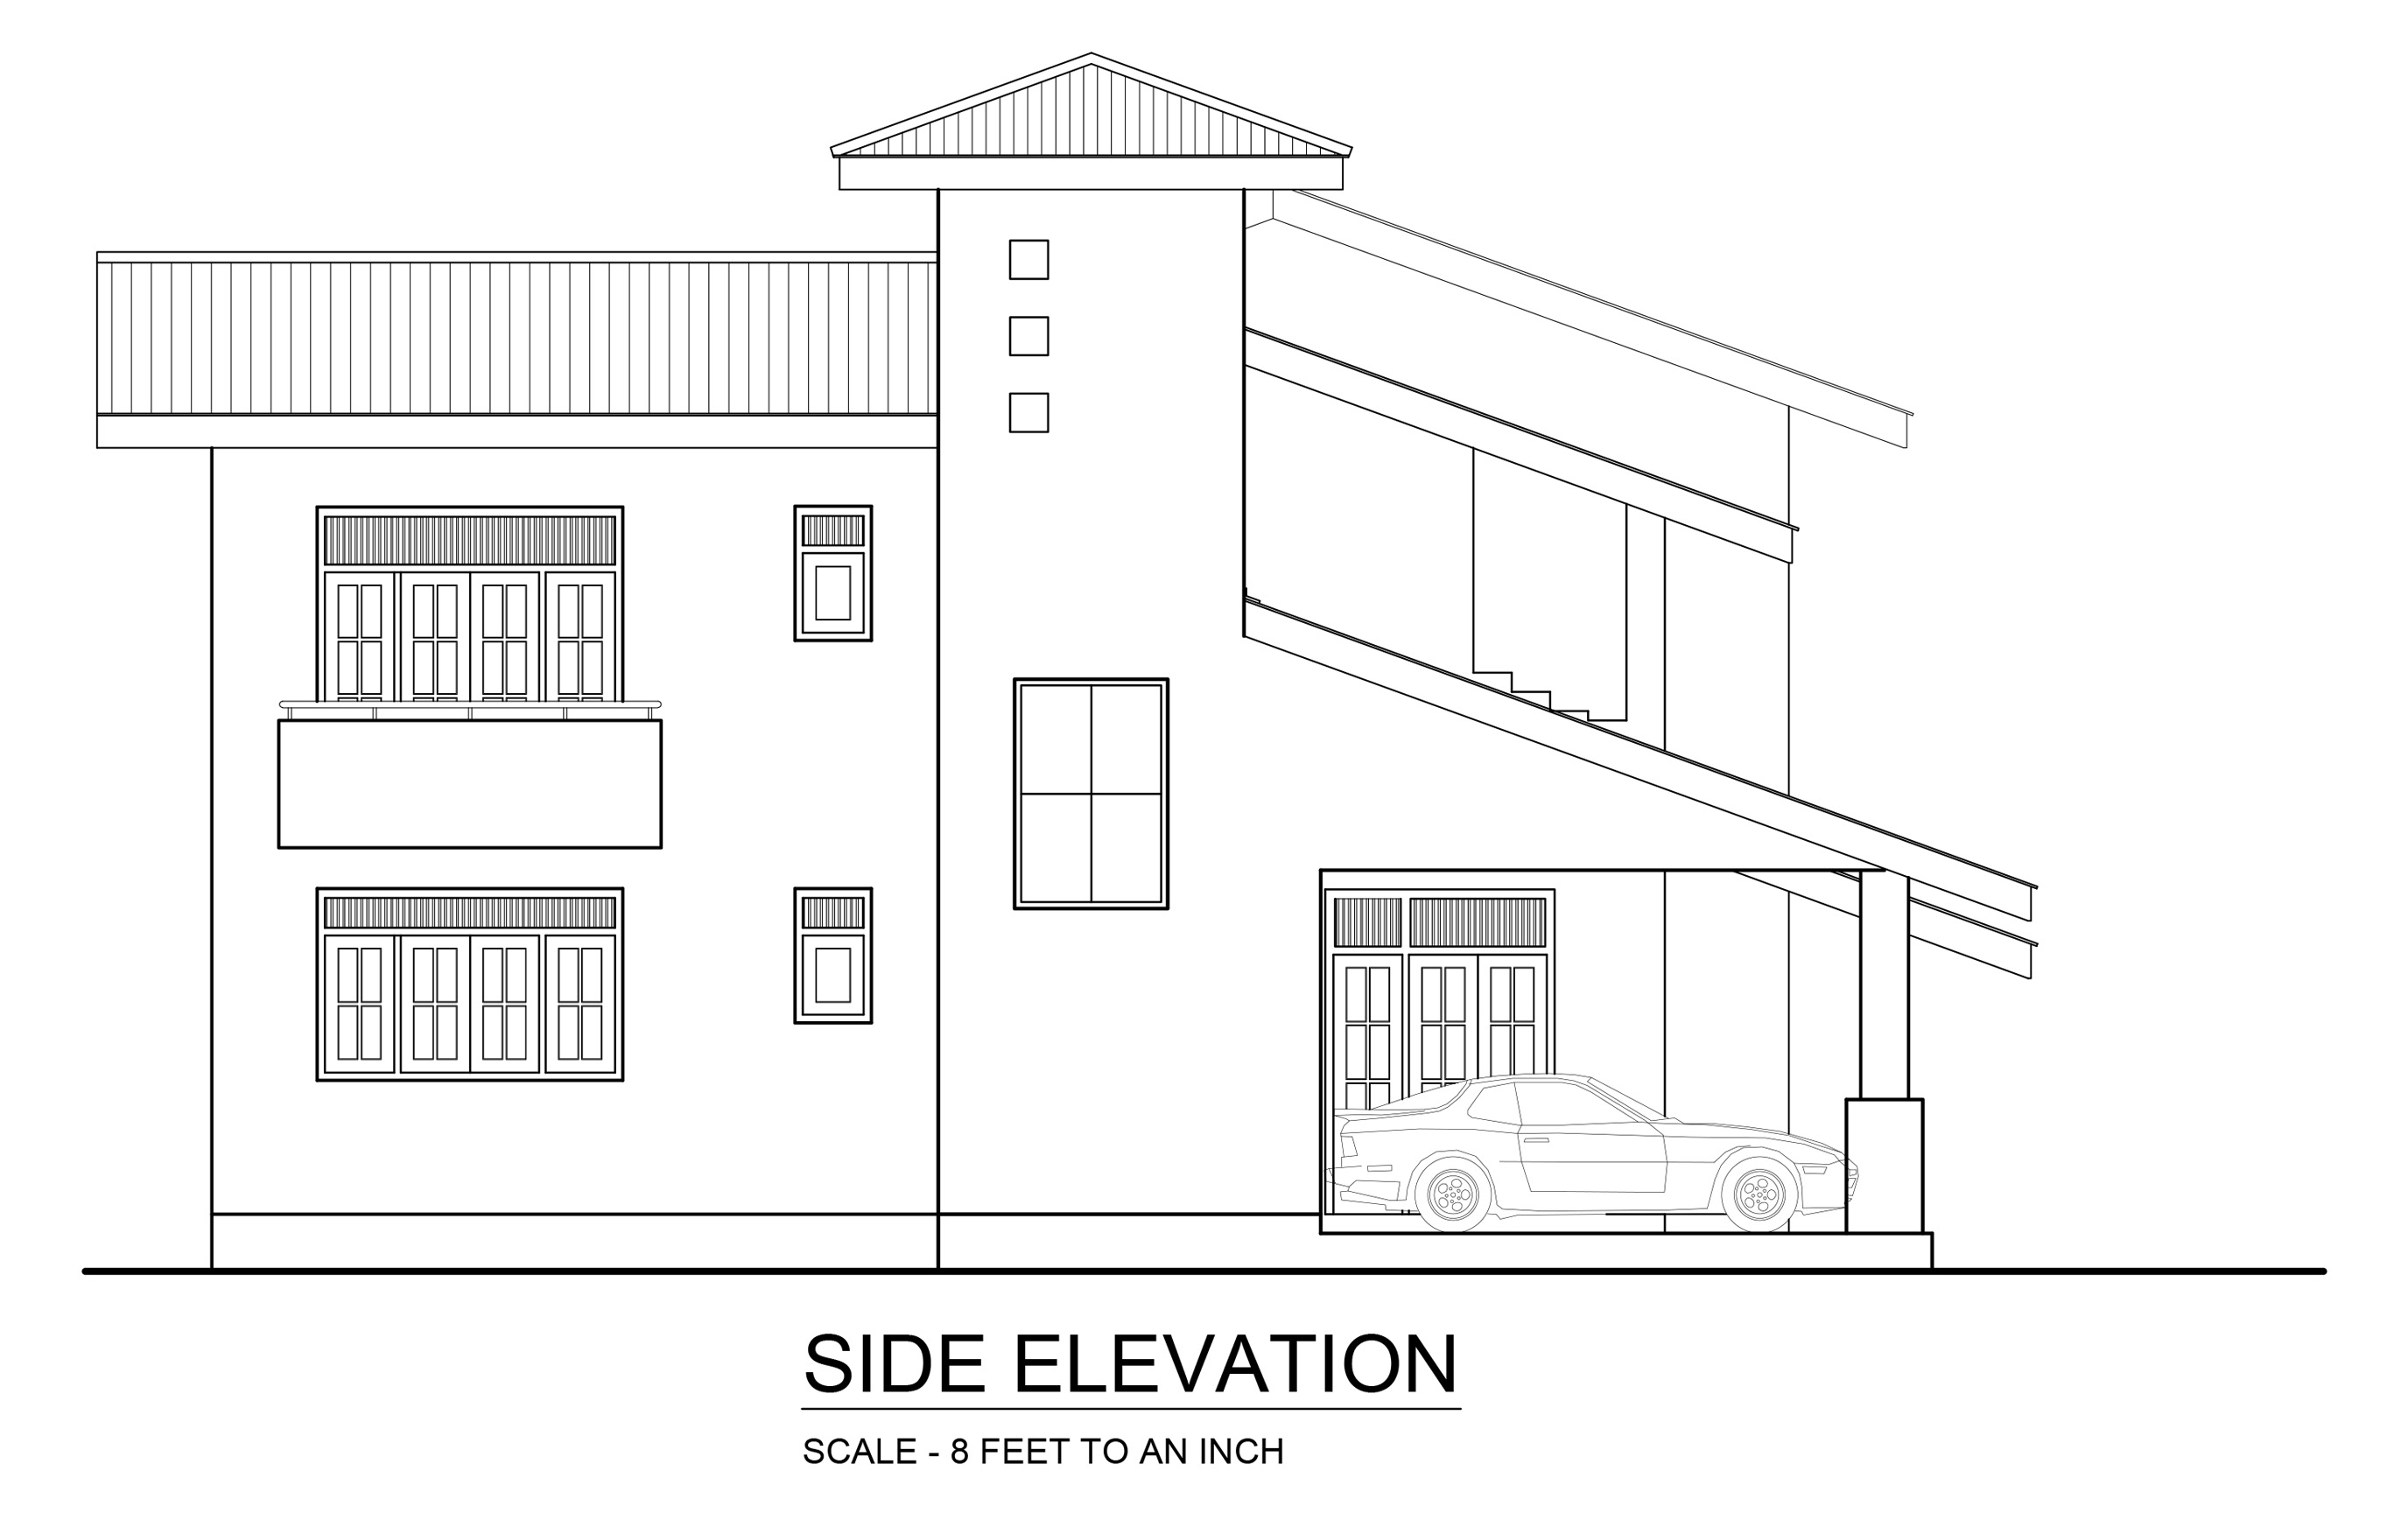 side elevation - DWG NET   Cad Blocks and House Plans on house elevation blueprint, house floor plan and elevation, house side elevation plan,